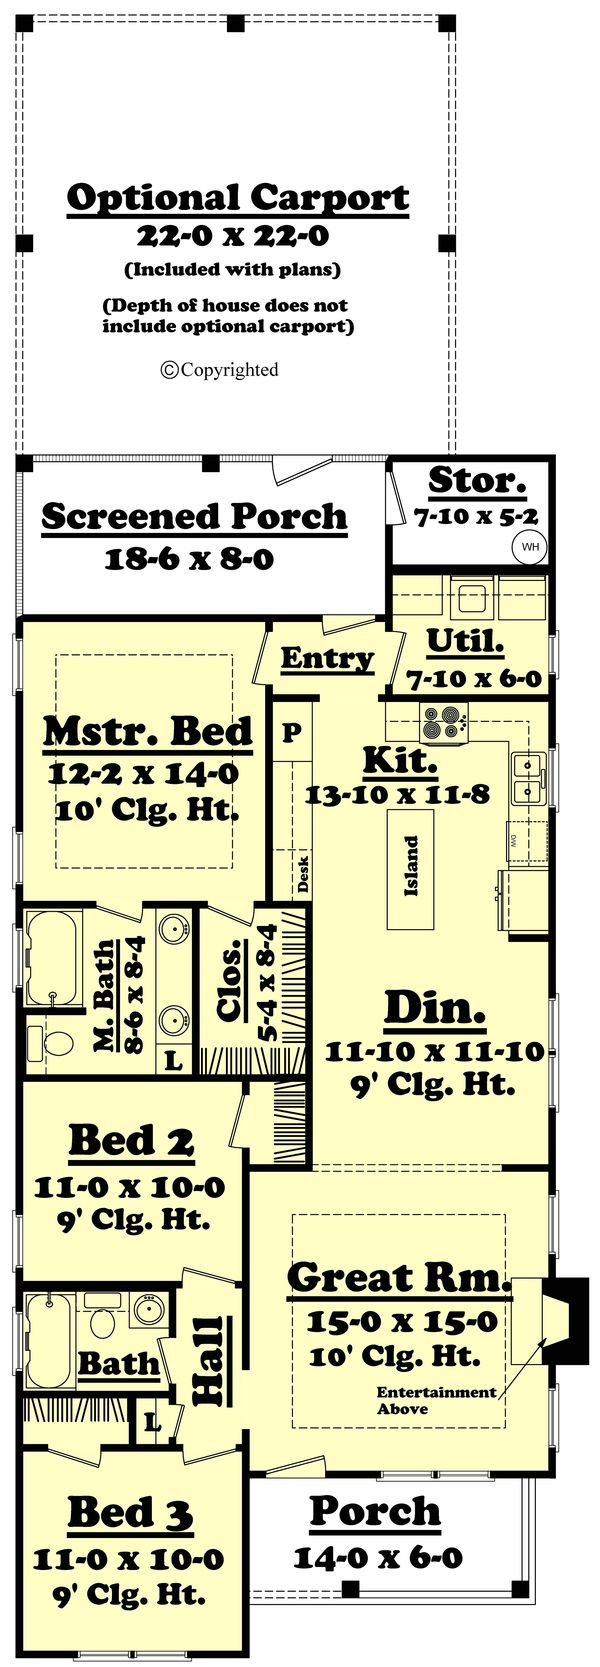 cottage style house plan 3 beds 2 baths 1300 sq ft plan 430 40 cottage style house plan 3 beds 2 baths 1300 sq ft plan 430